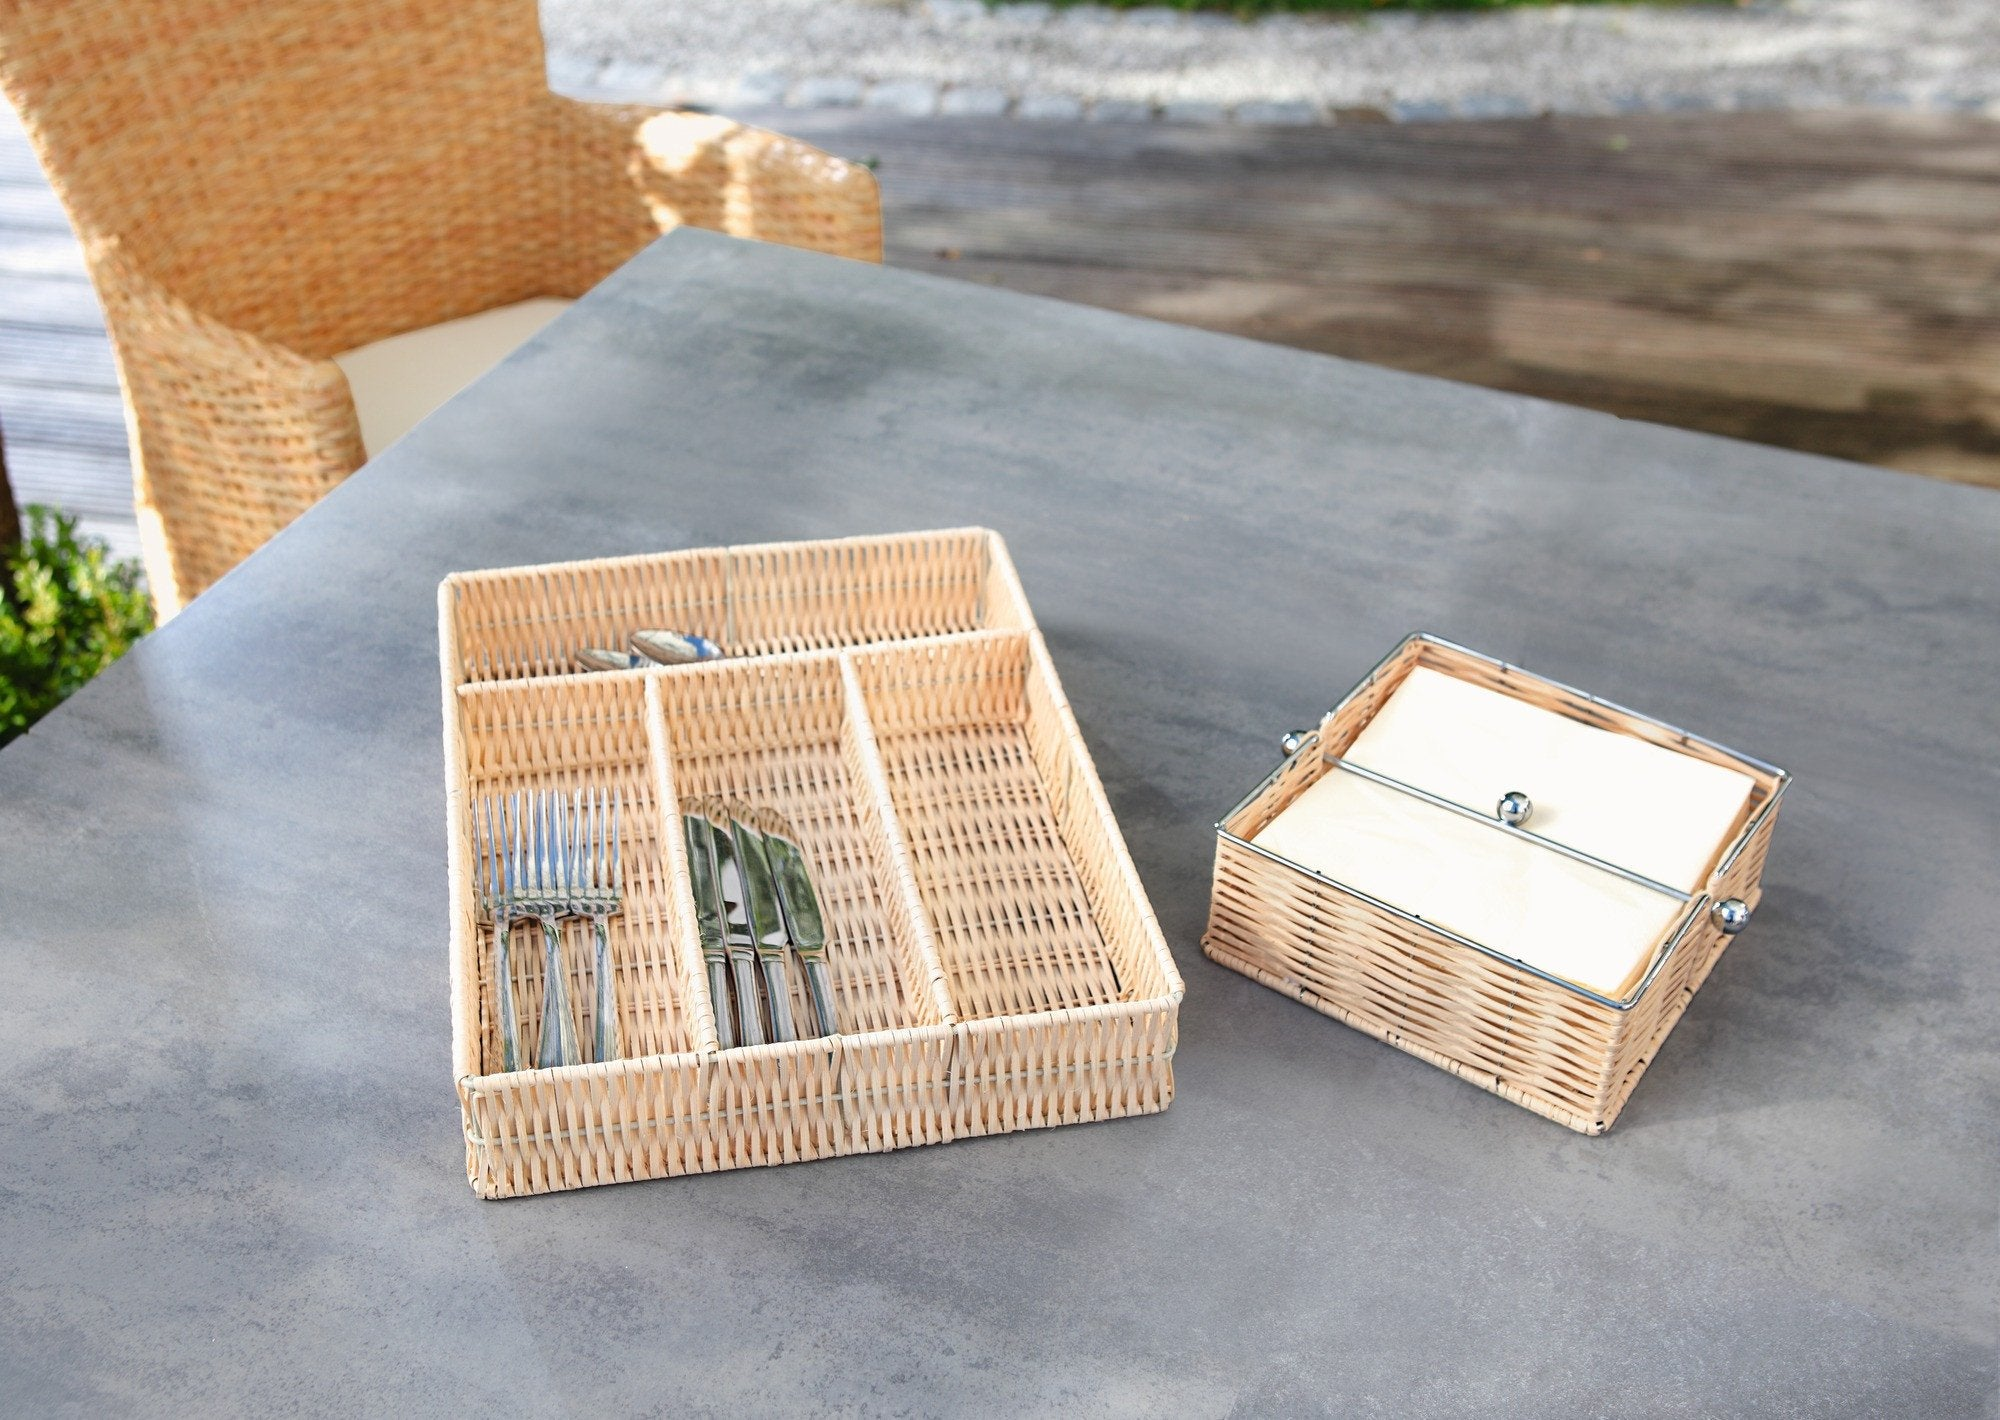 Cutlery basket organizer, Rattan Cutlery Dispenser,  Cutlery Holder, Kitchen Organizer, Cutlery Rack Tray with Rattan braided